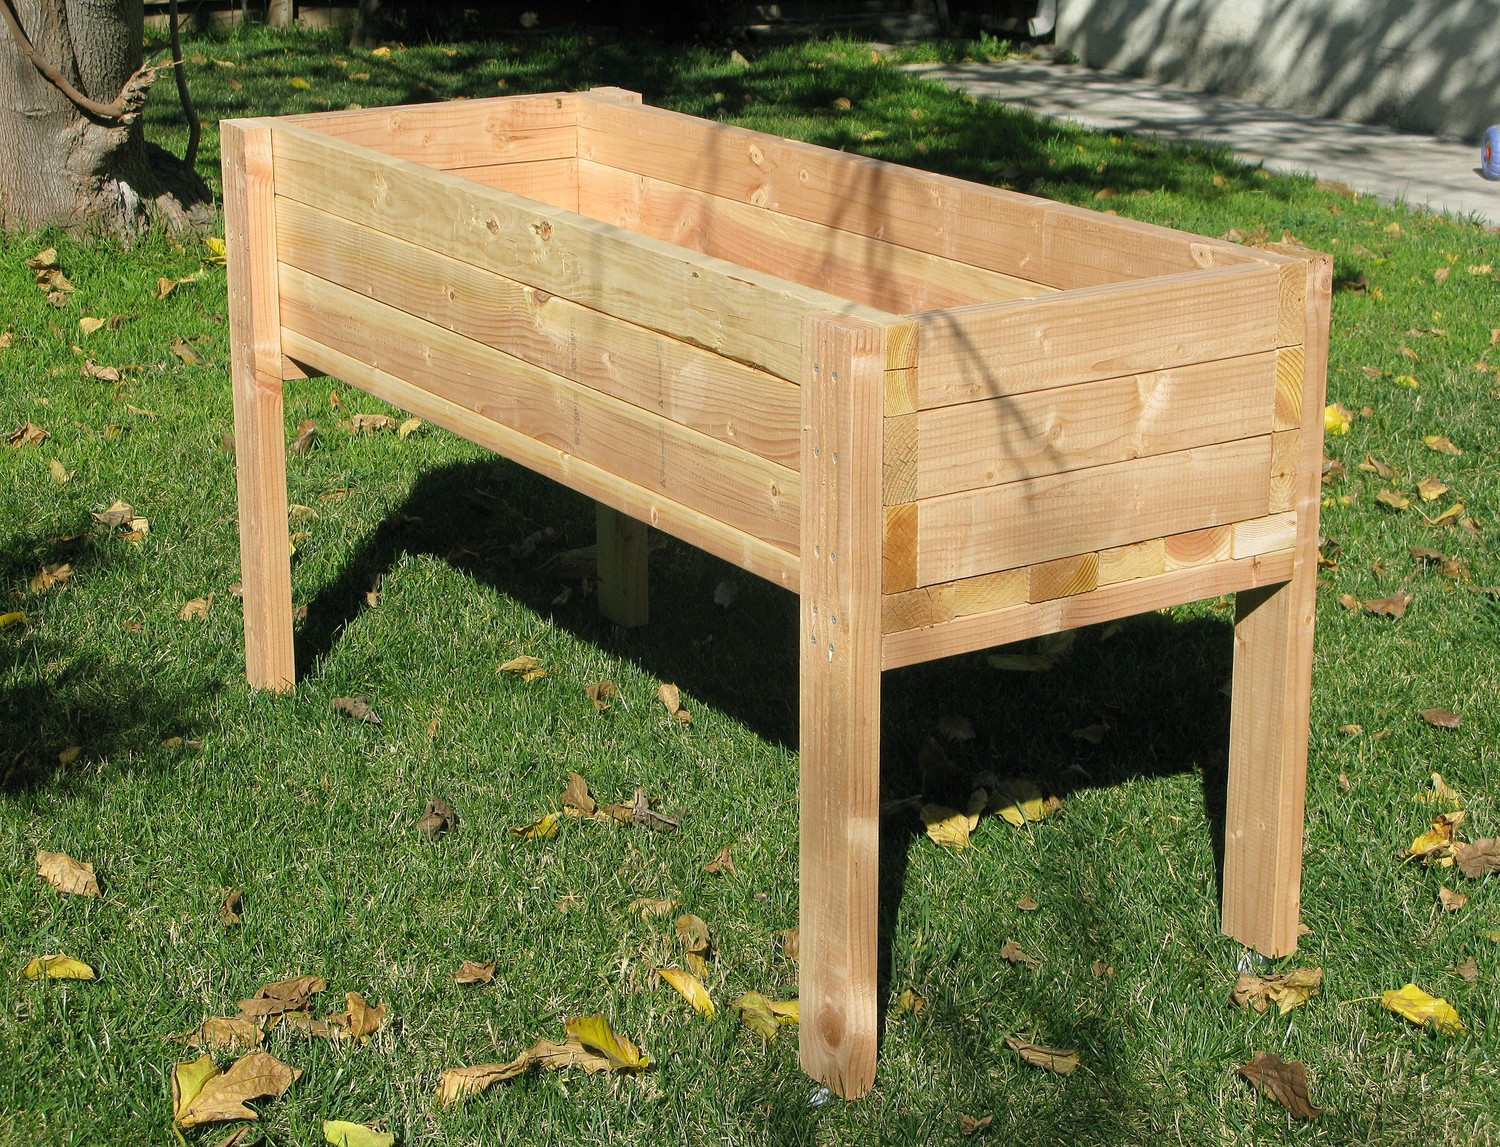 Best ideas about DIY Elevated Planter Box . Save or Pin Planters glamorous elevated planter box Cedar Planters Now.